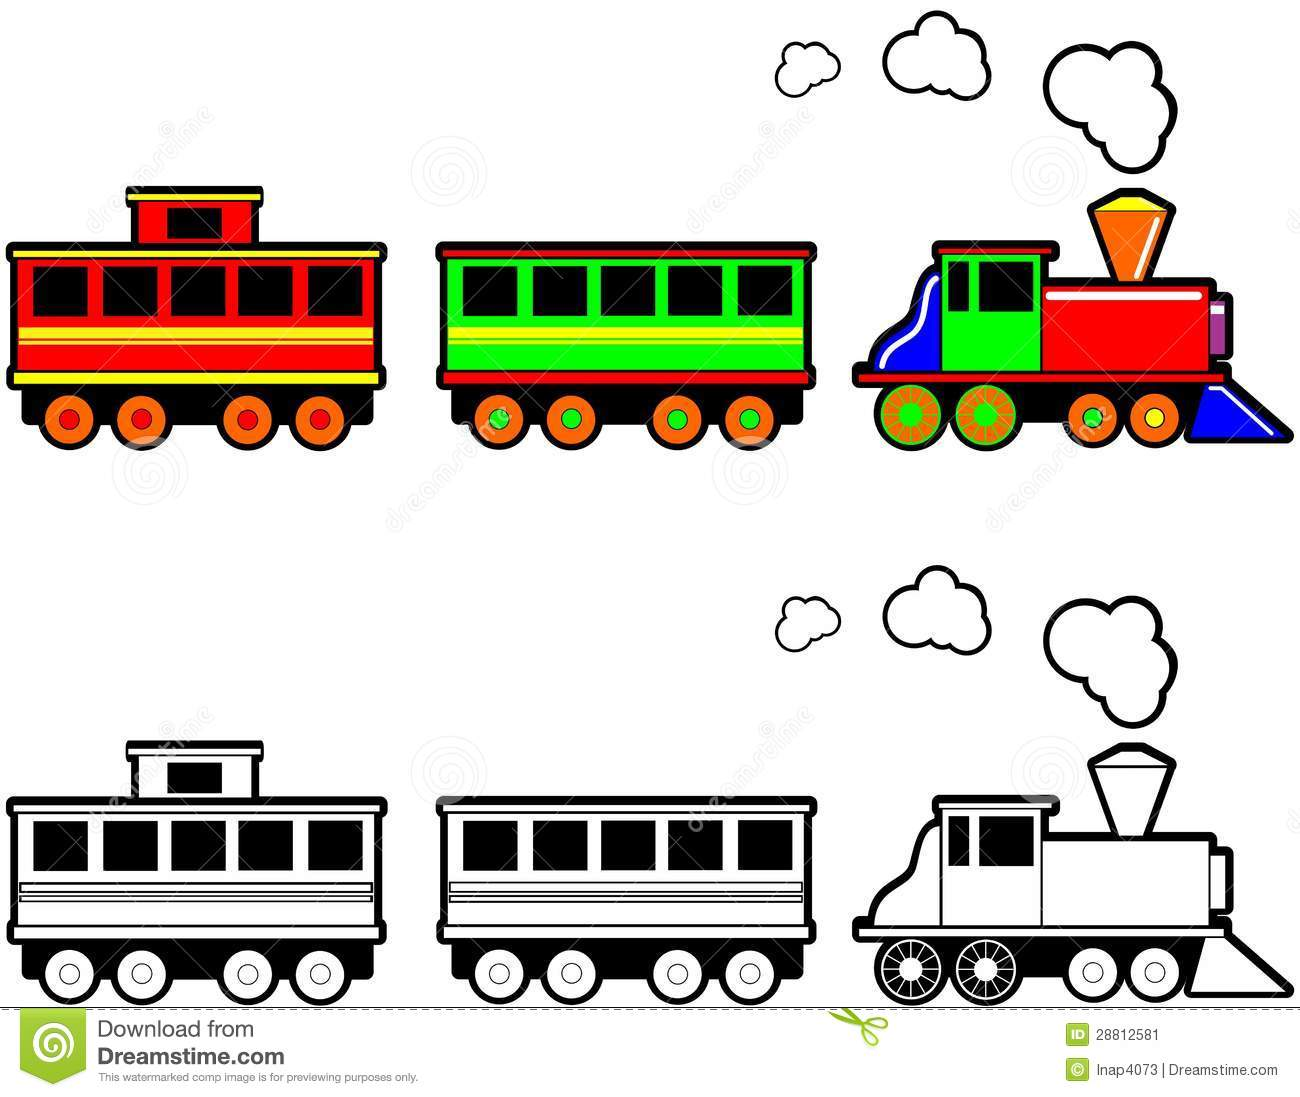 locomotive-clipart-black-and-white-toy-train-28812581.jpg